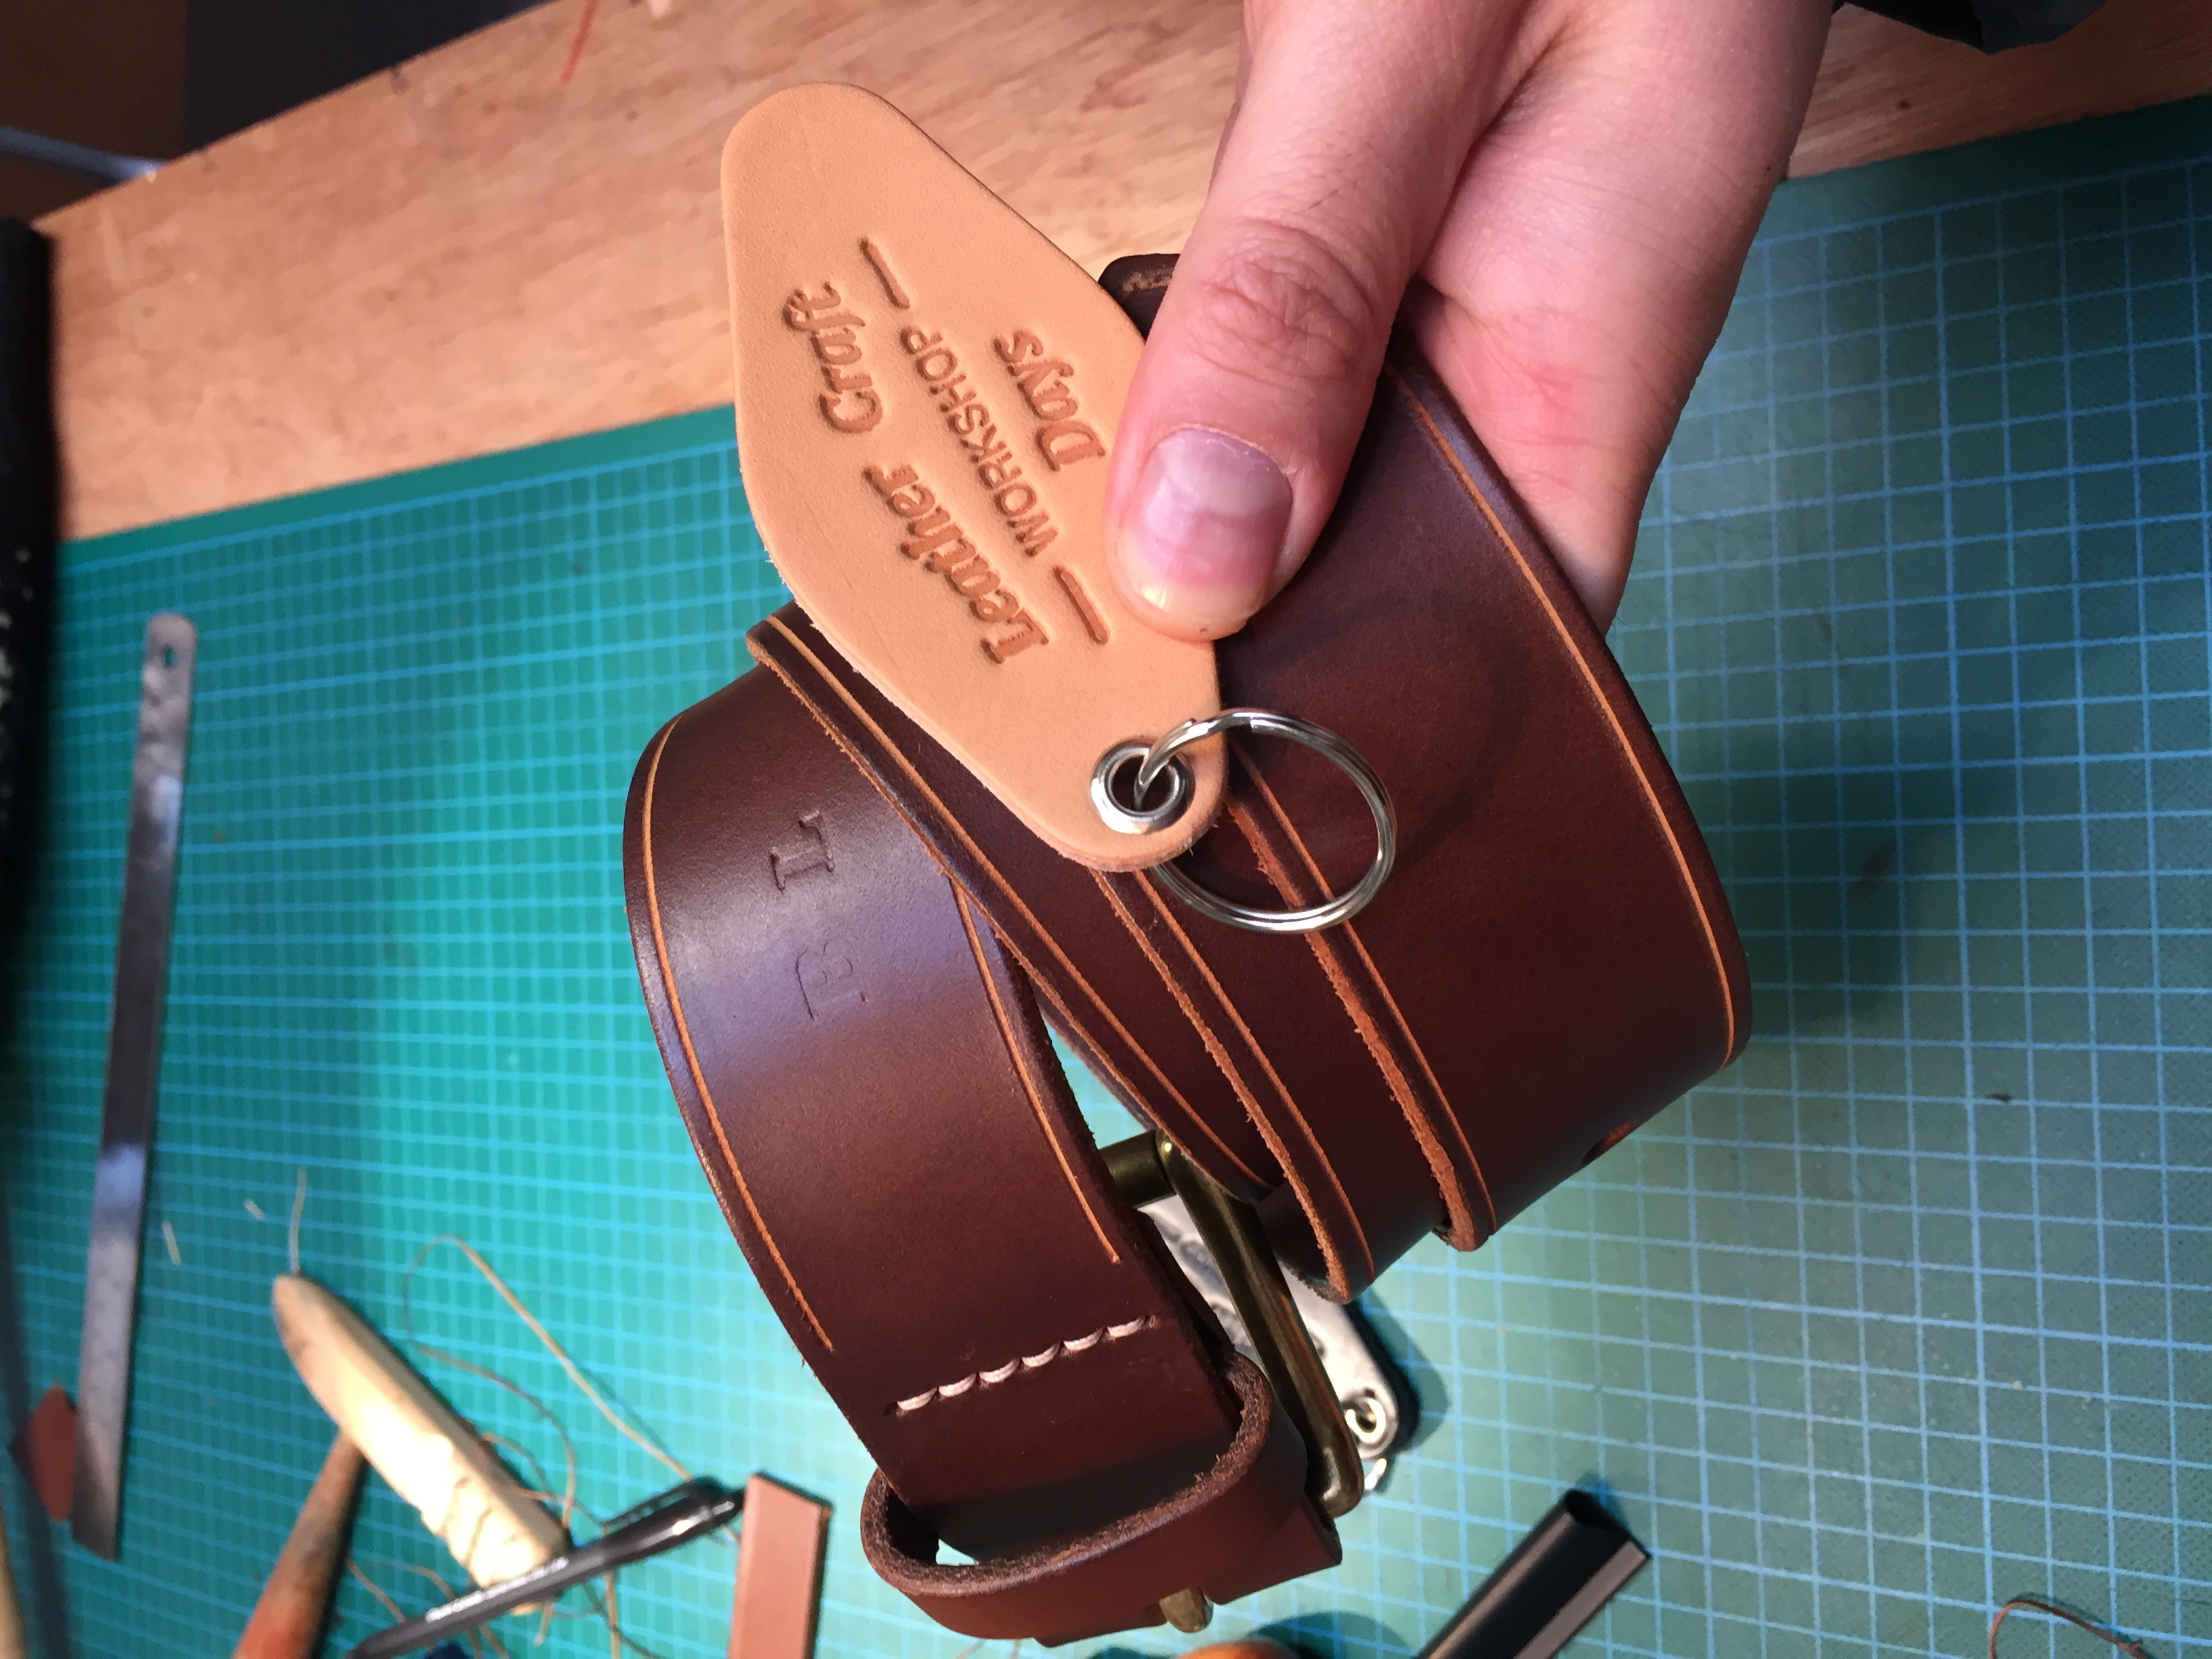 Fabulous finished Belt, and key fob placement!